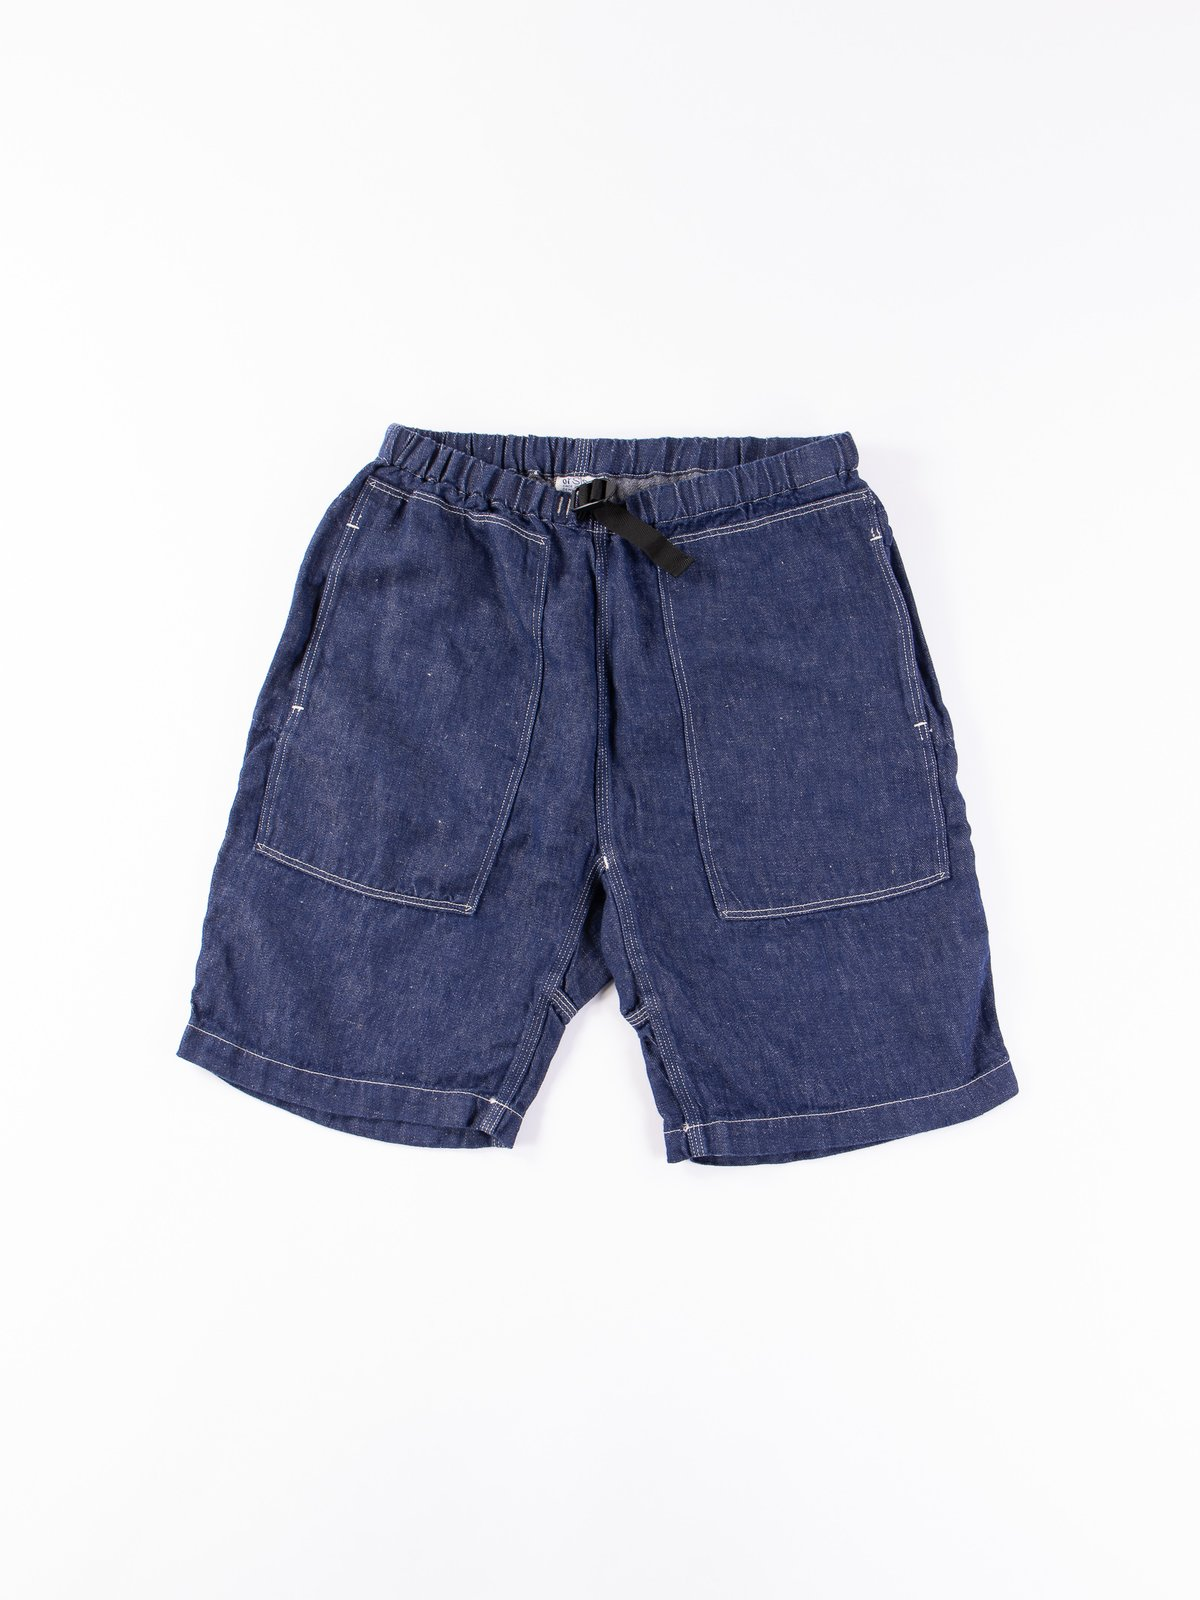 One Wash Linen Denim Climbing Short - Image 1